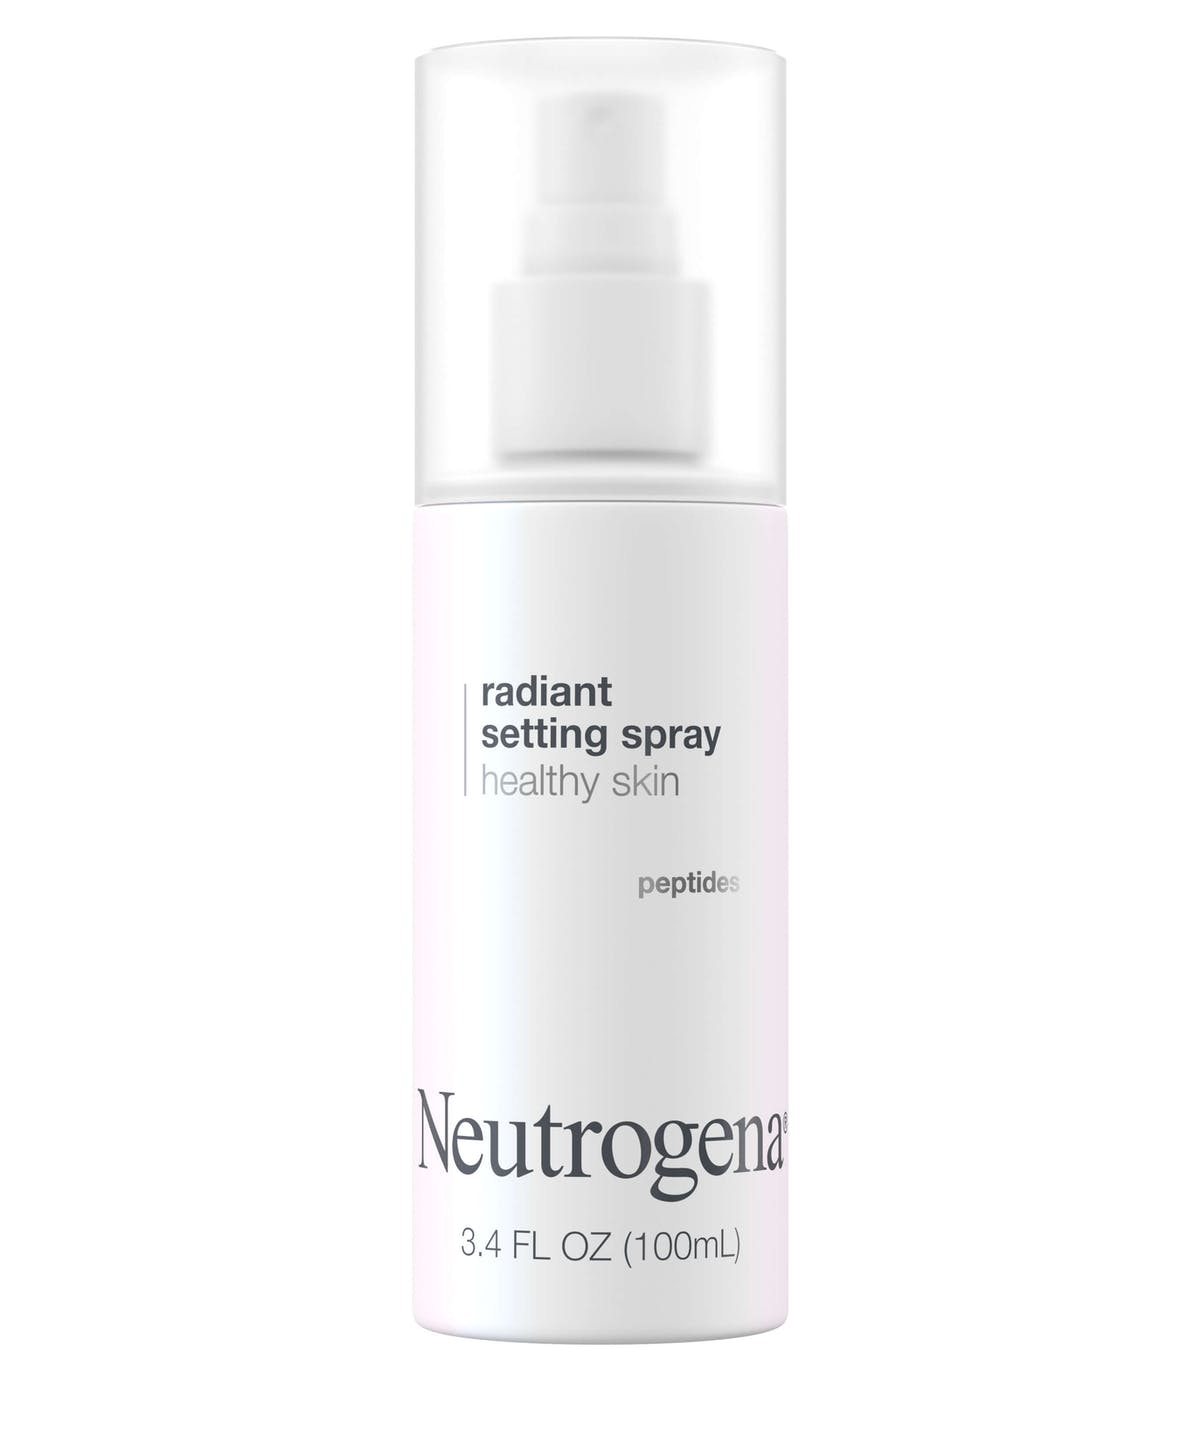 Radiant Makeup Setting Spray With Peptides by Neutrogena #12